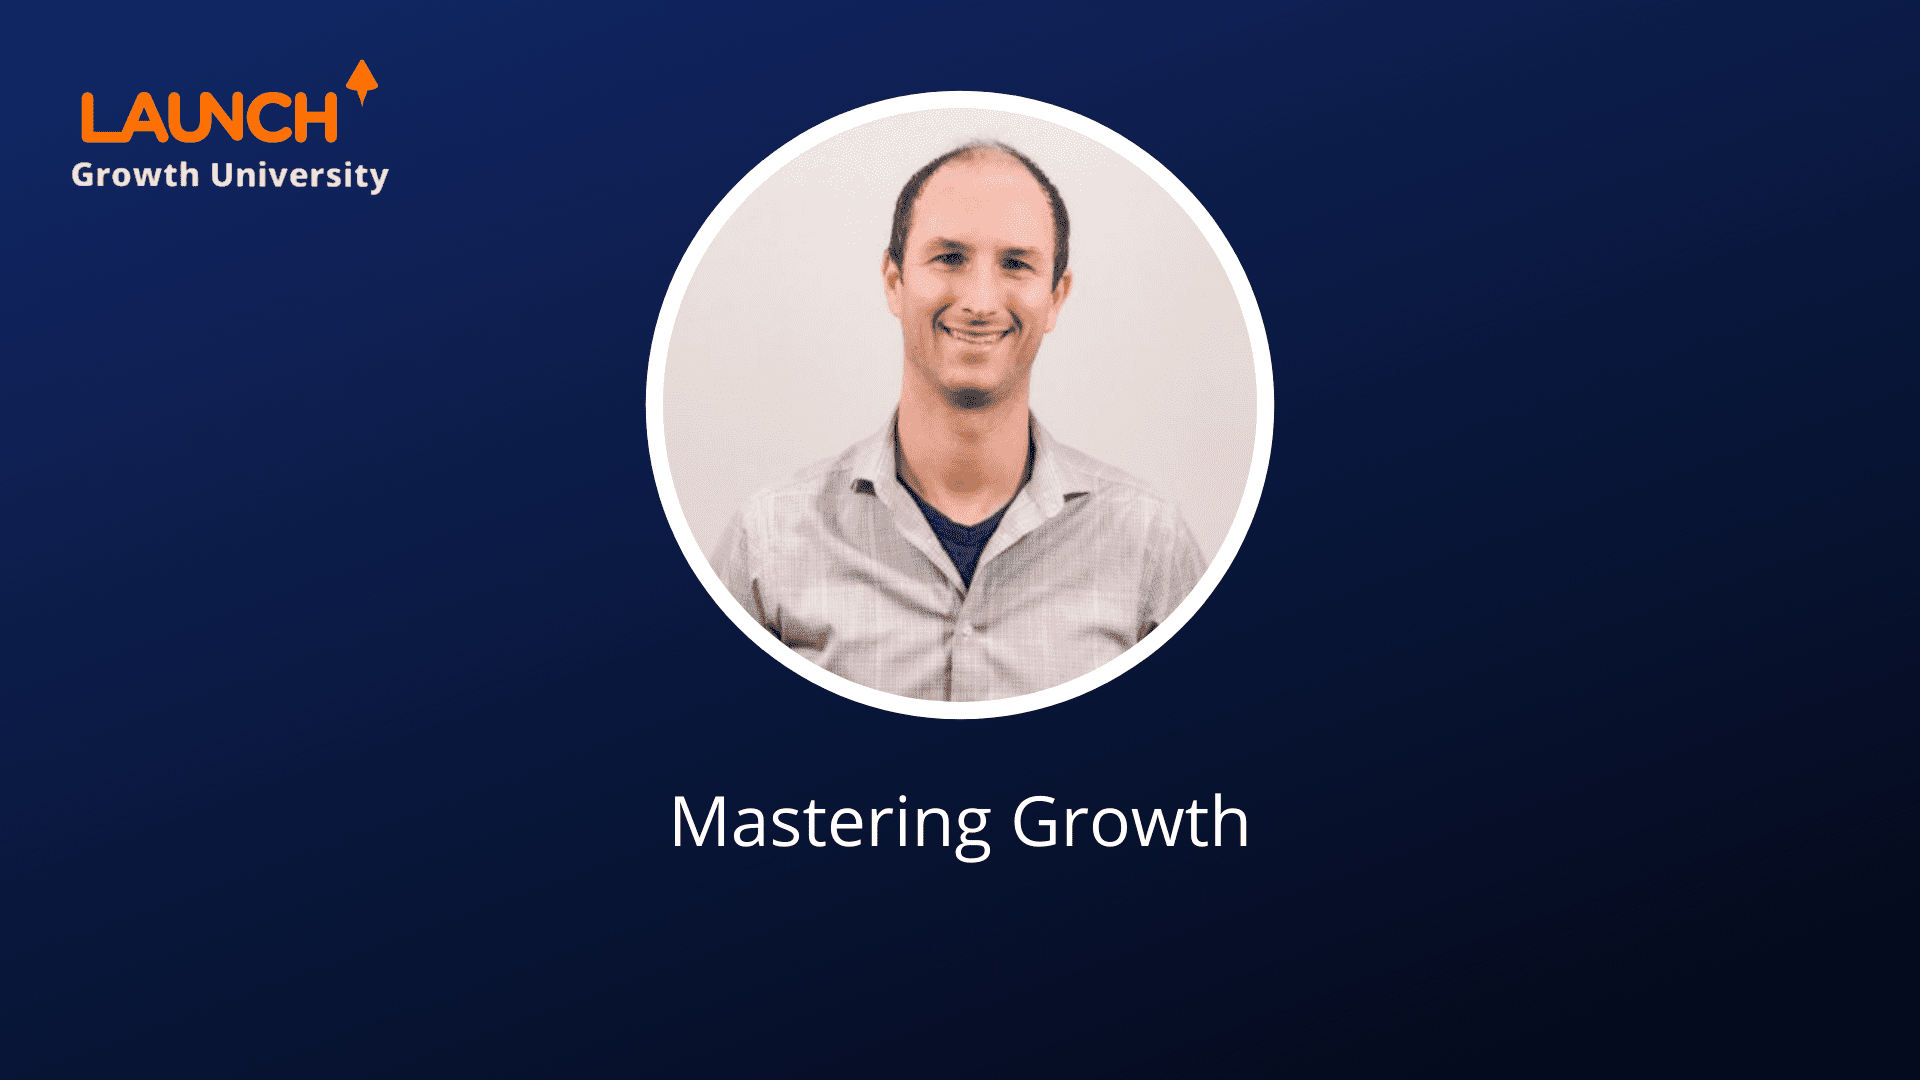 Mastering Growth